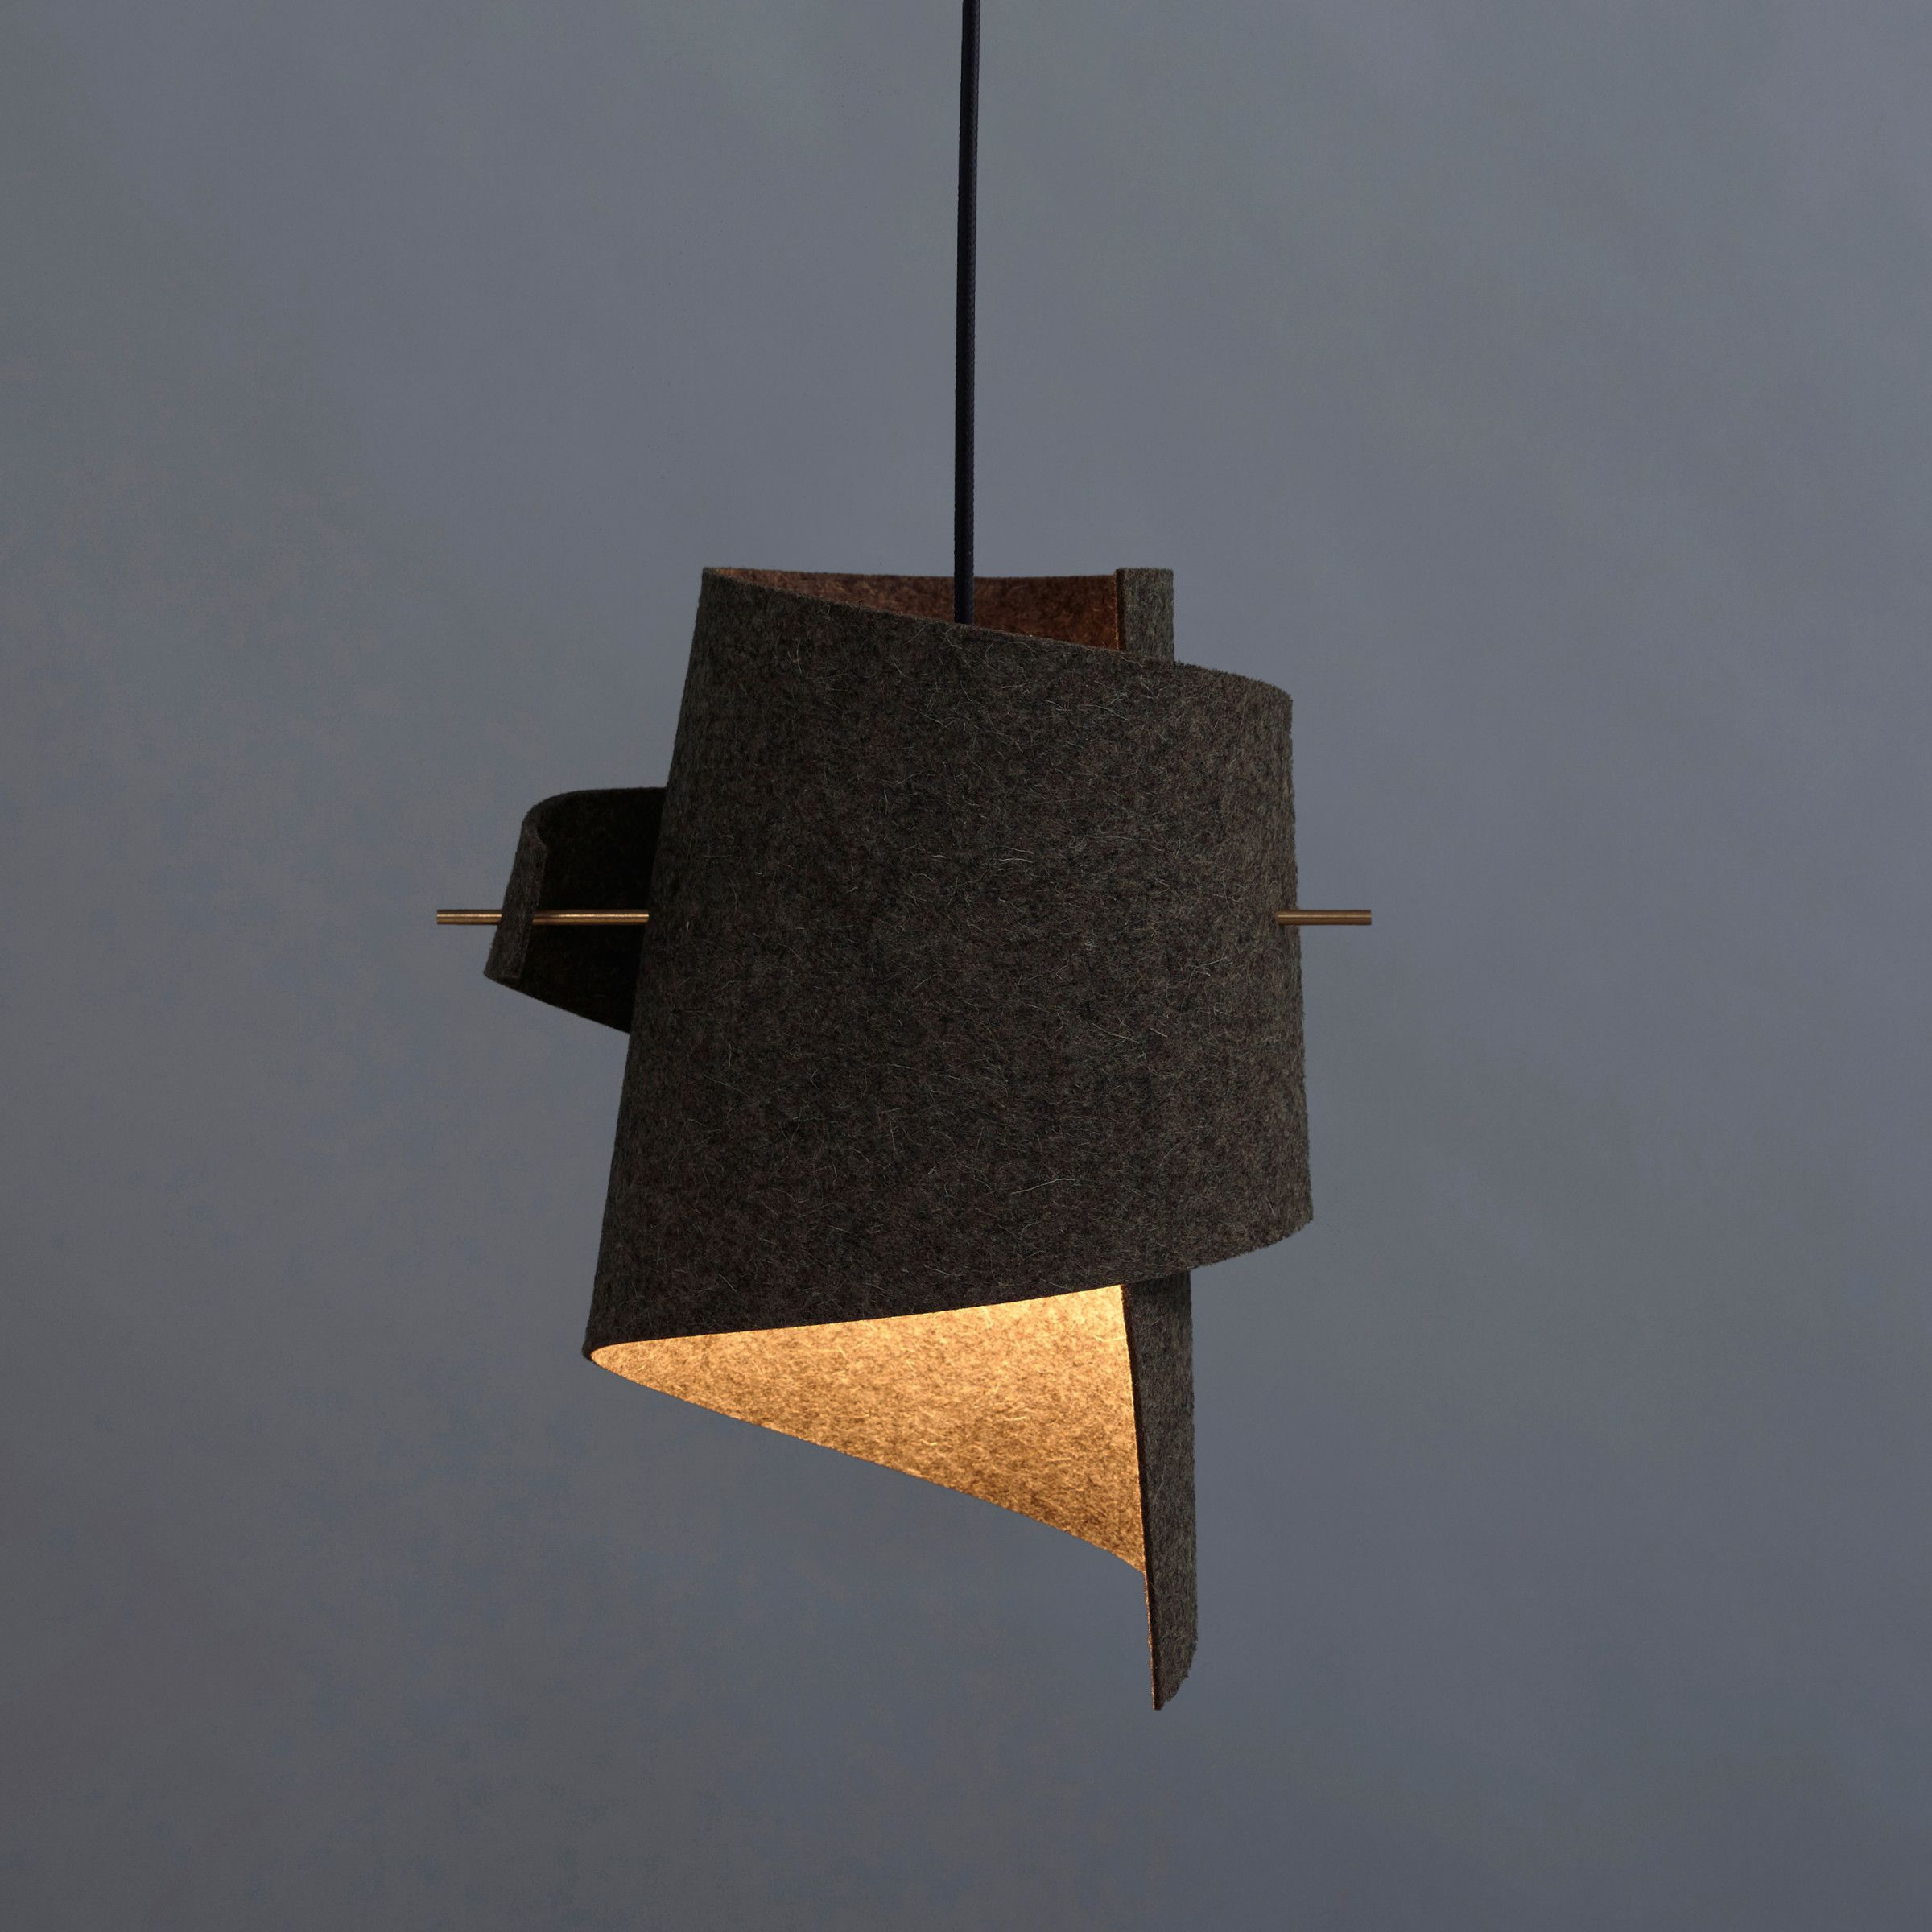 handmade ml01 lamp wool felt by moijn lampen pinterest. Black Bedroom Furniture Sets. Home Design Ideas